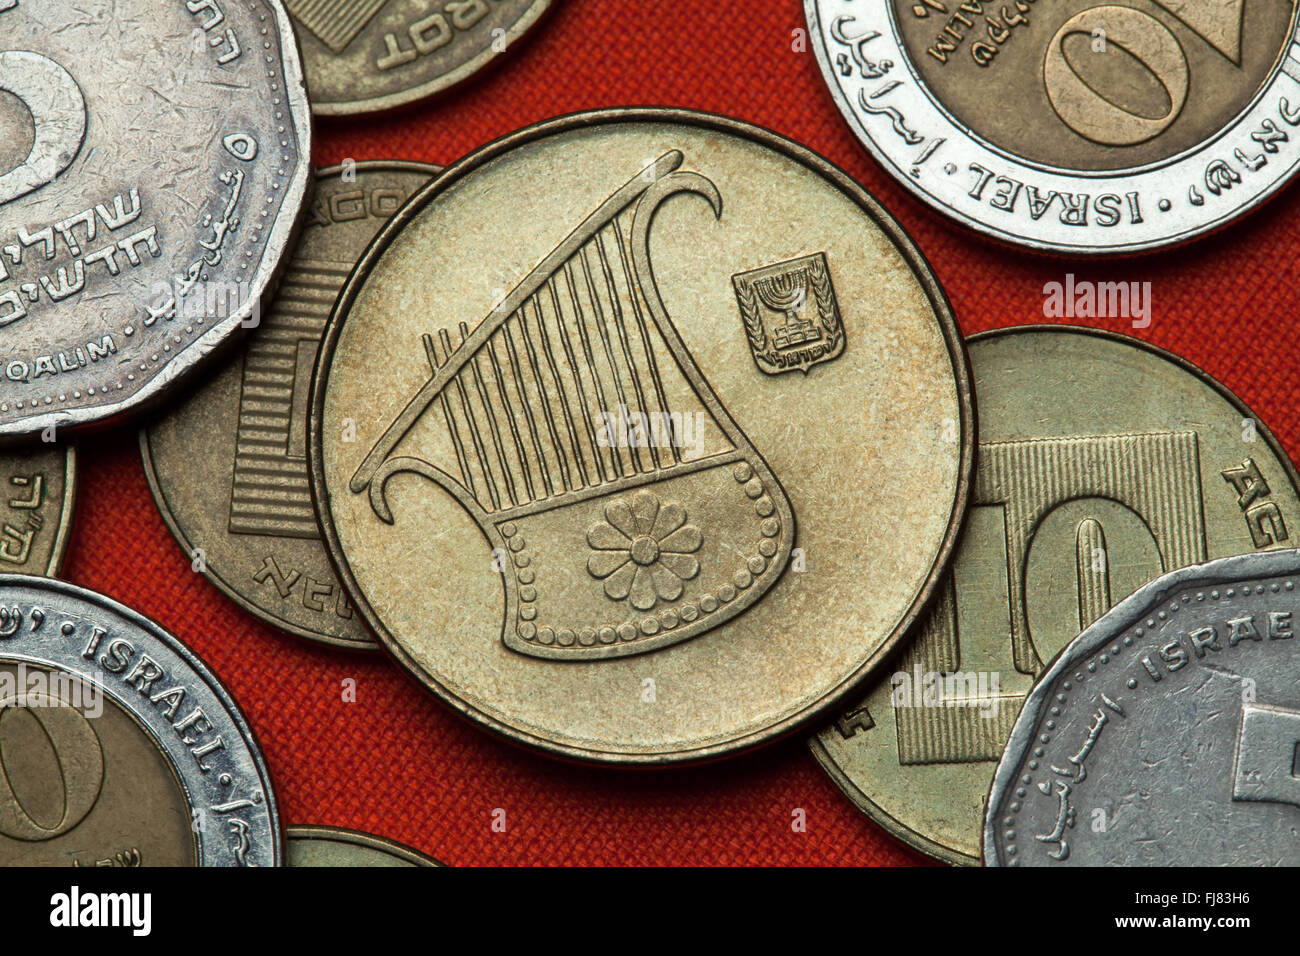 Coins of Israel. Lyre depicted in the Israeli half new shekel coin. - Stock Image